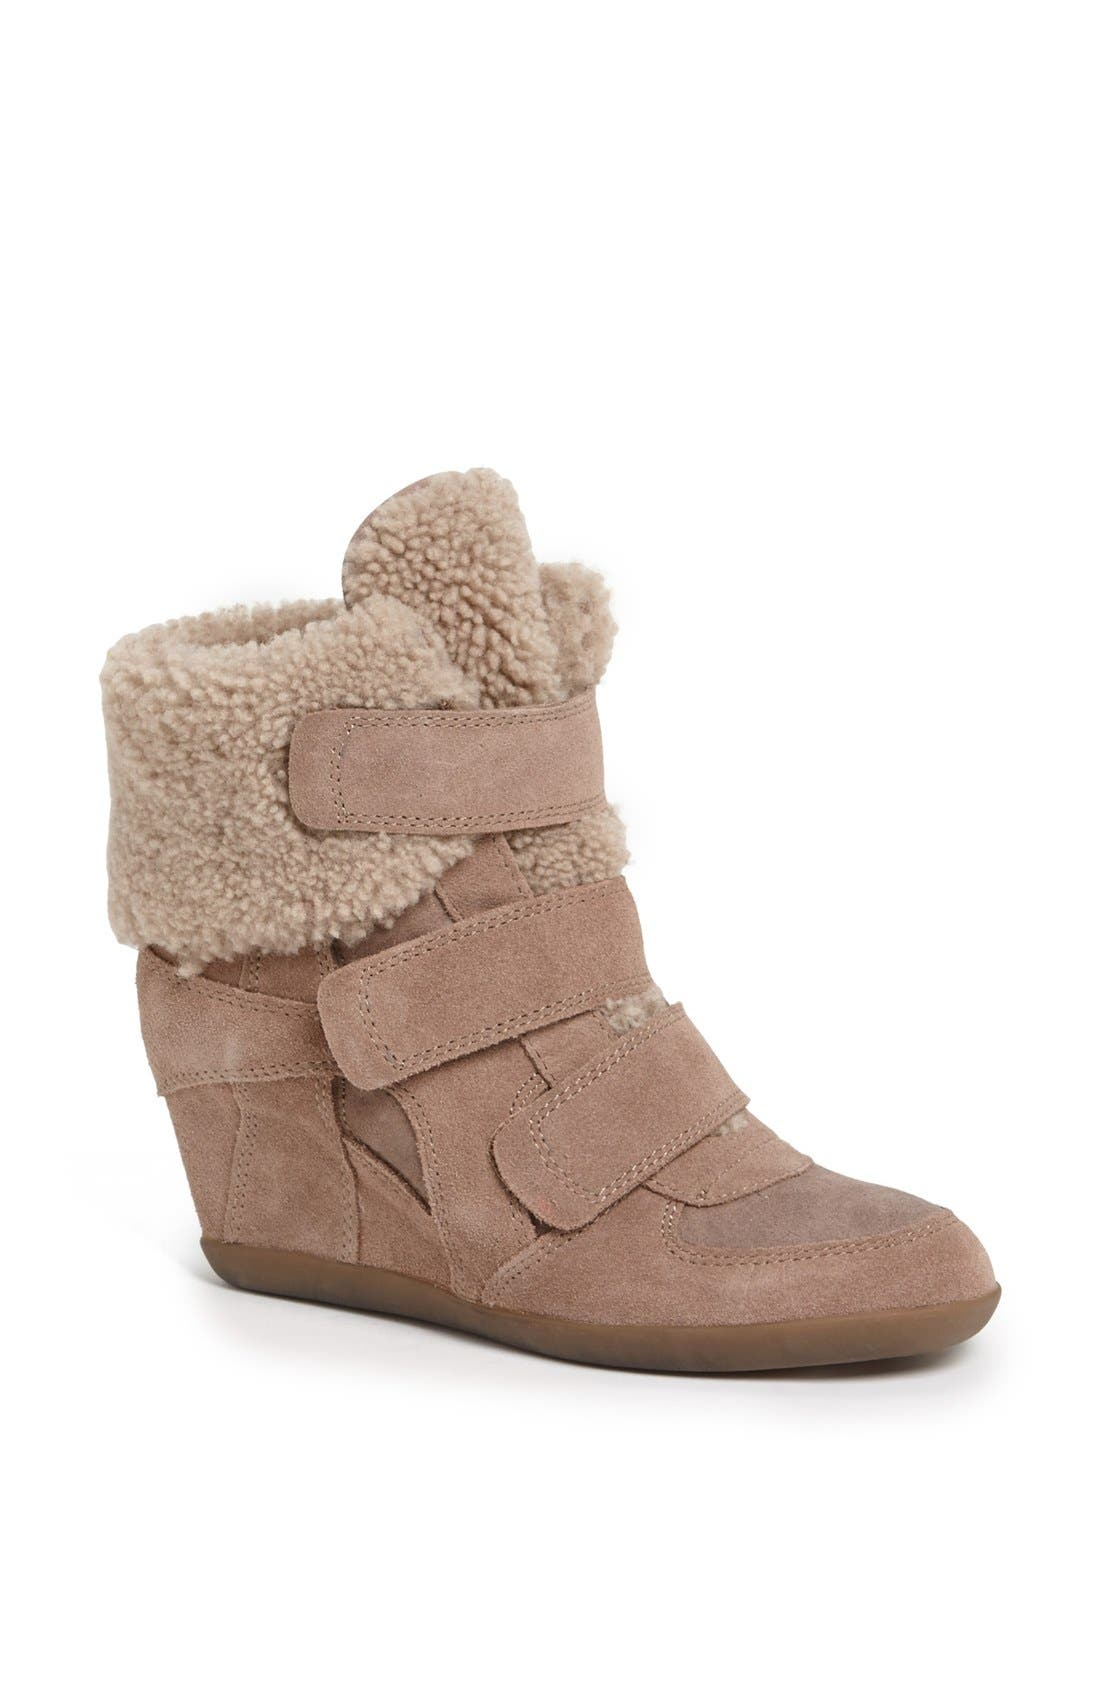 Alternate Image 1 Selected - Ash 'Brizz' Shearling Cuff Hidden Wedge Sneaker